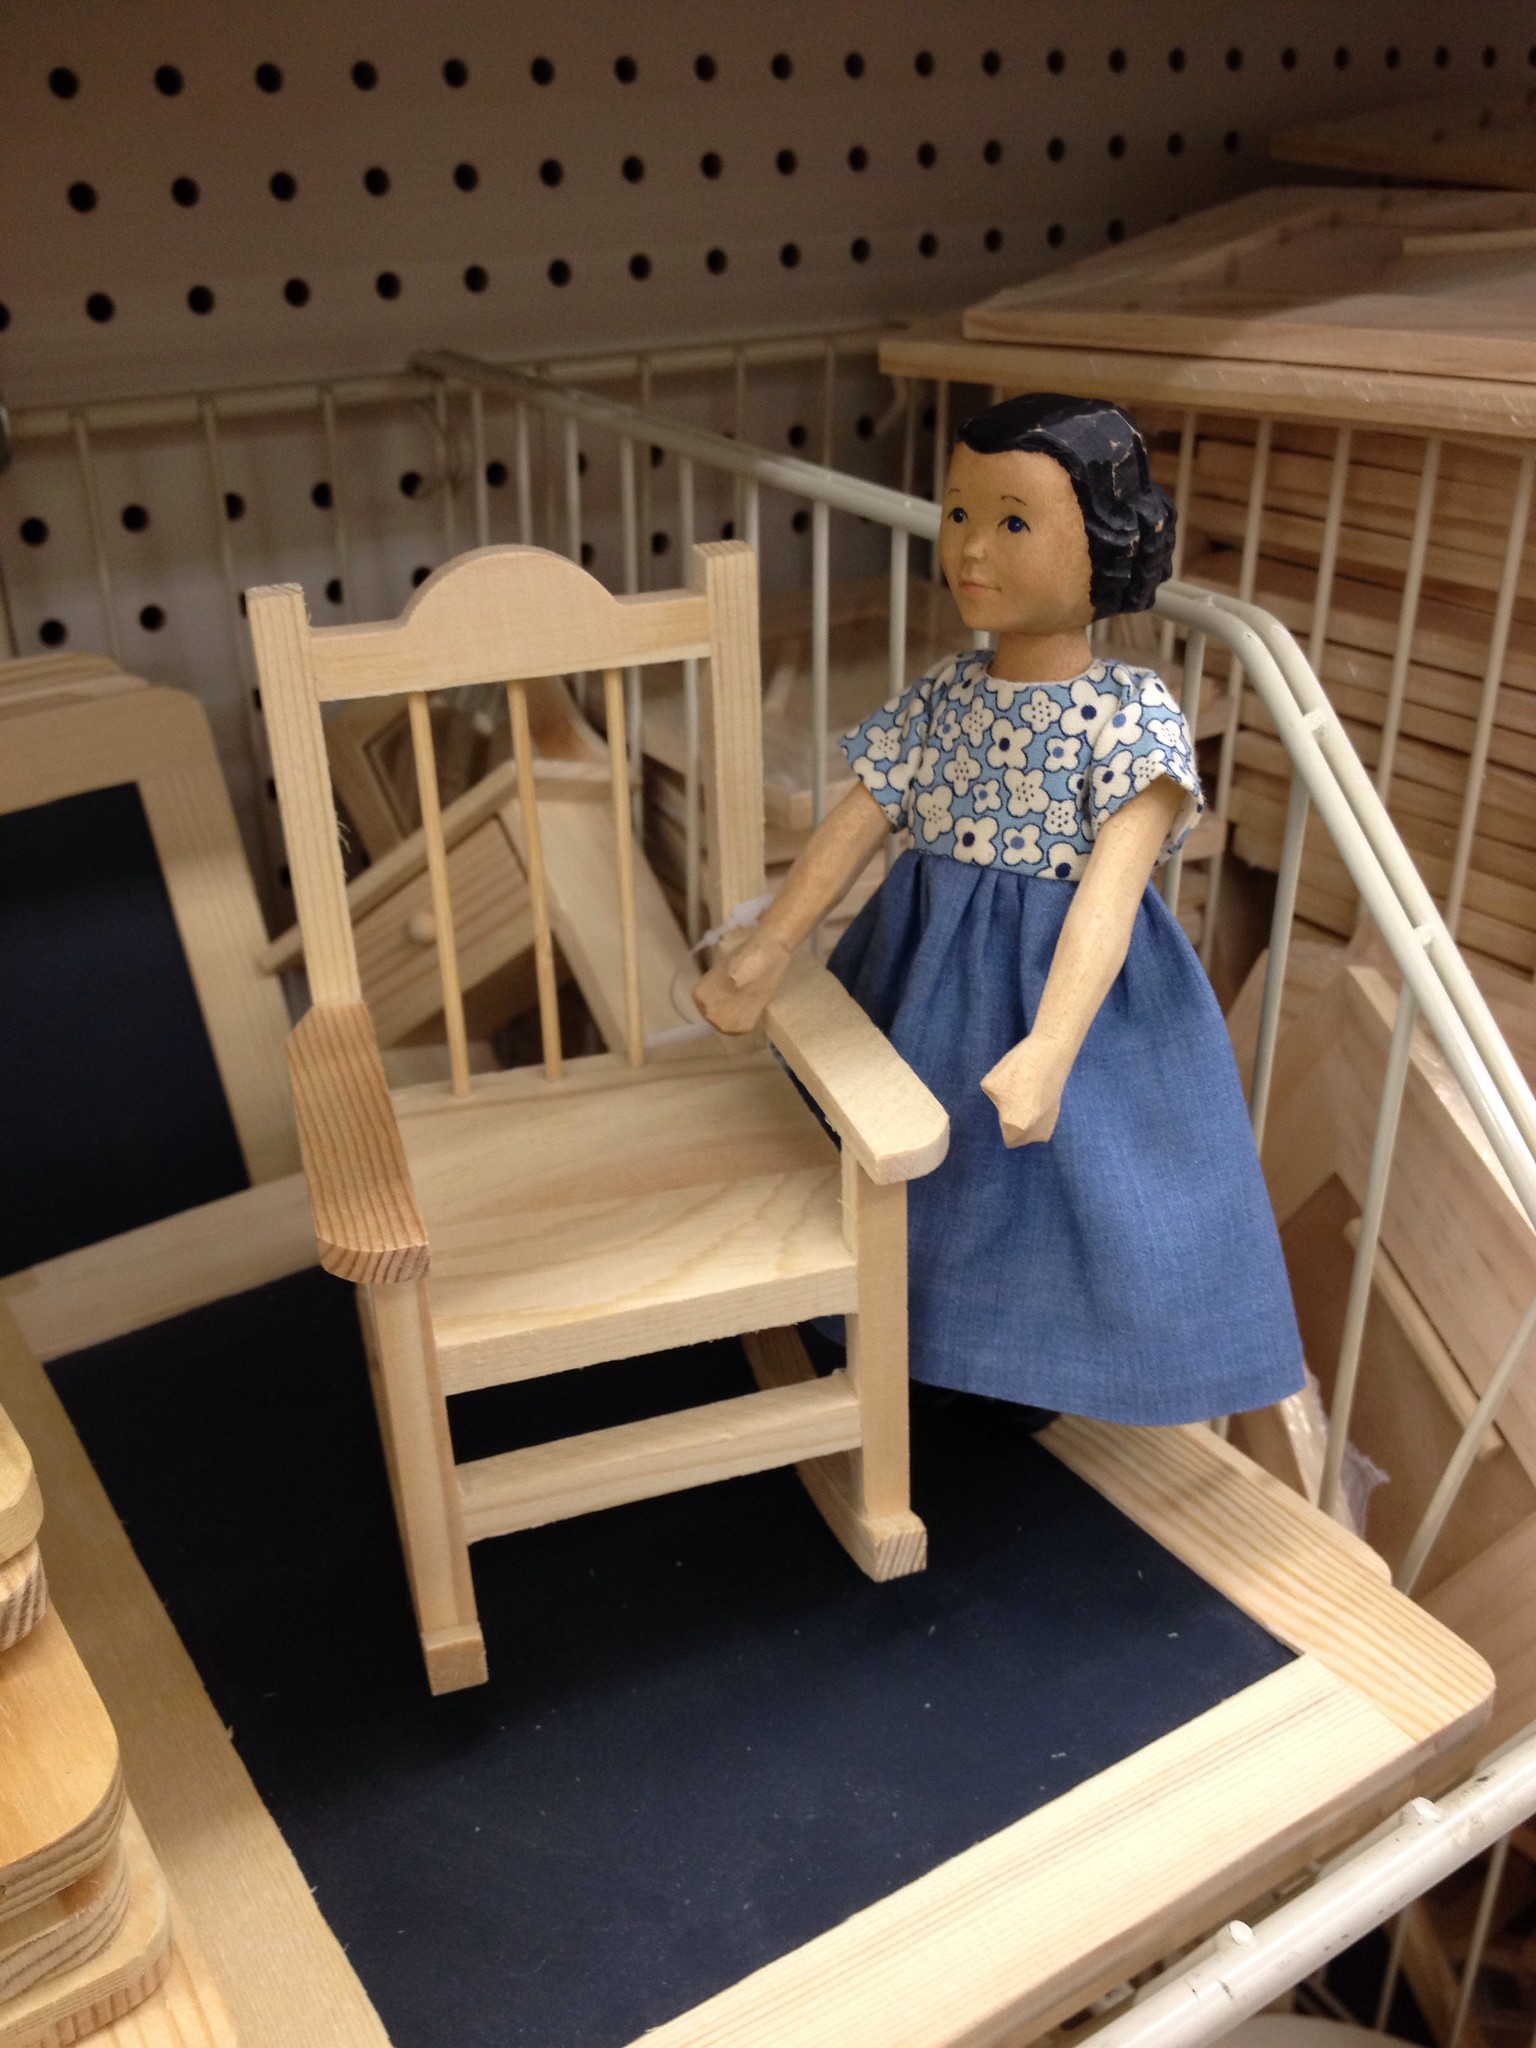 Craft store chairs